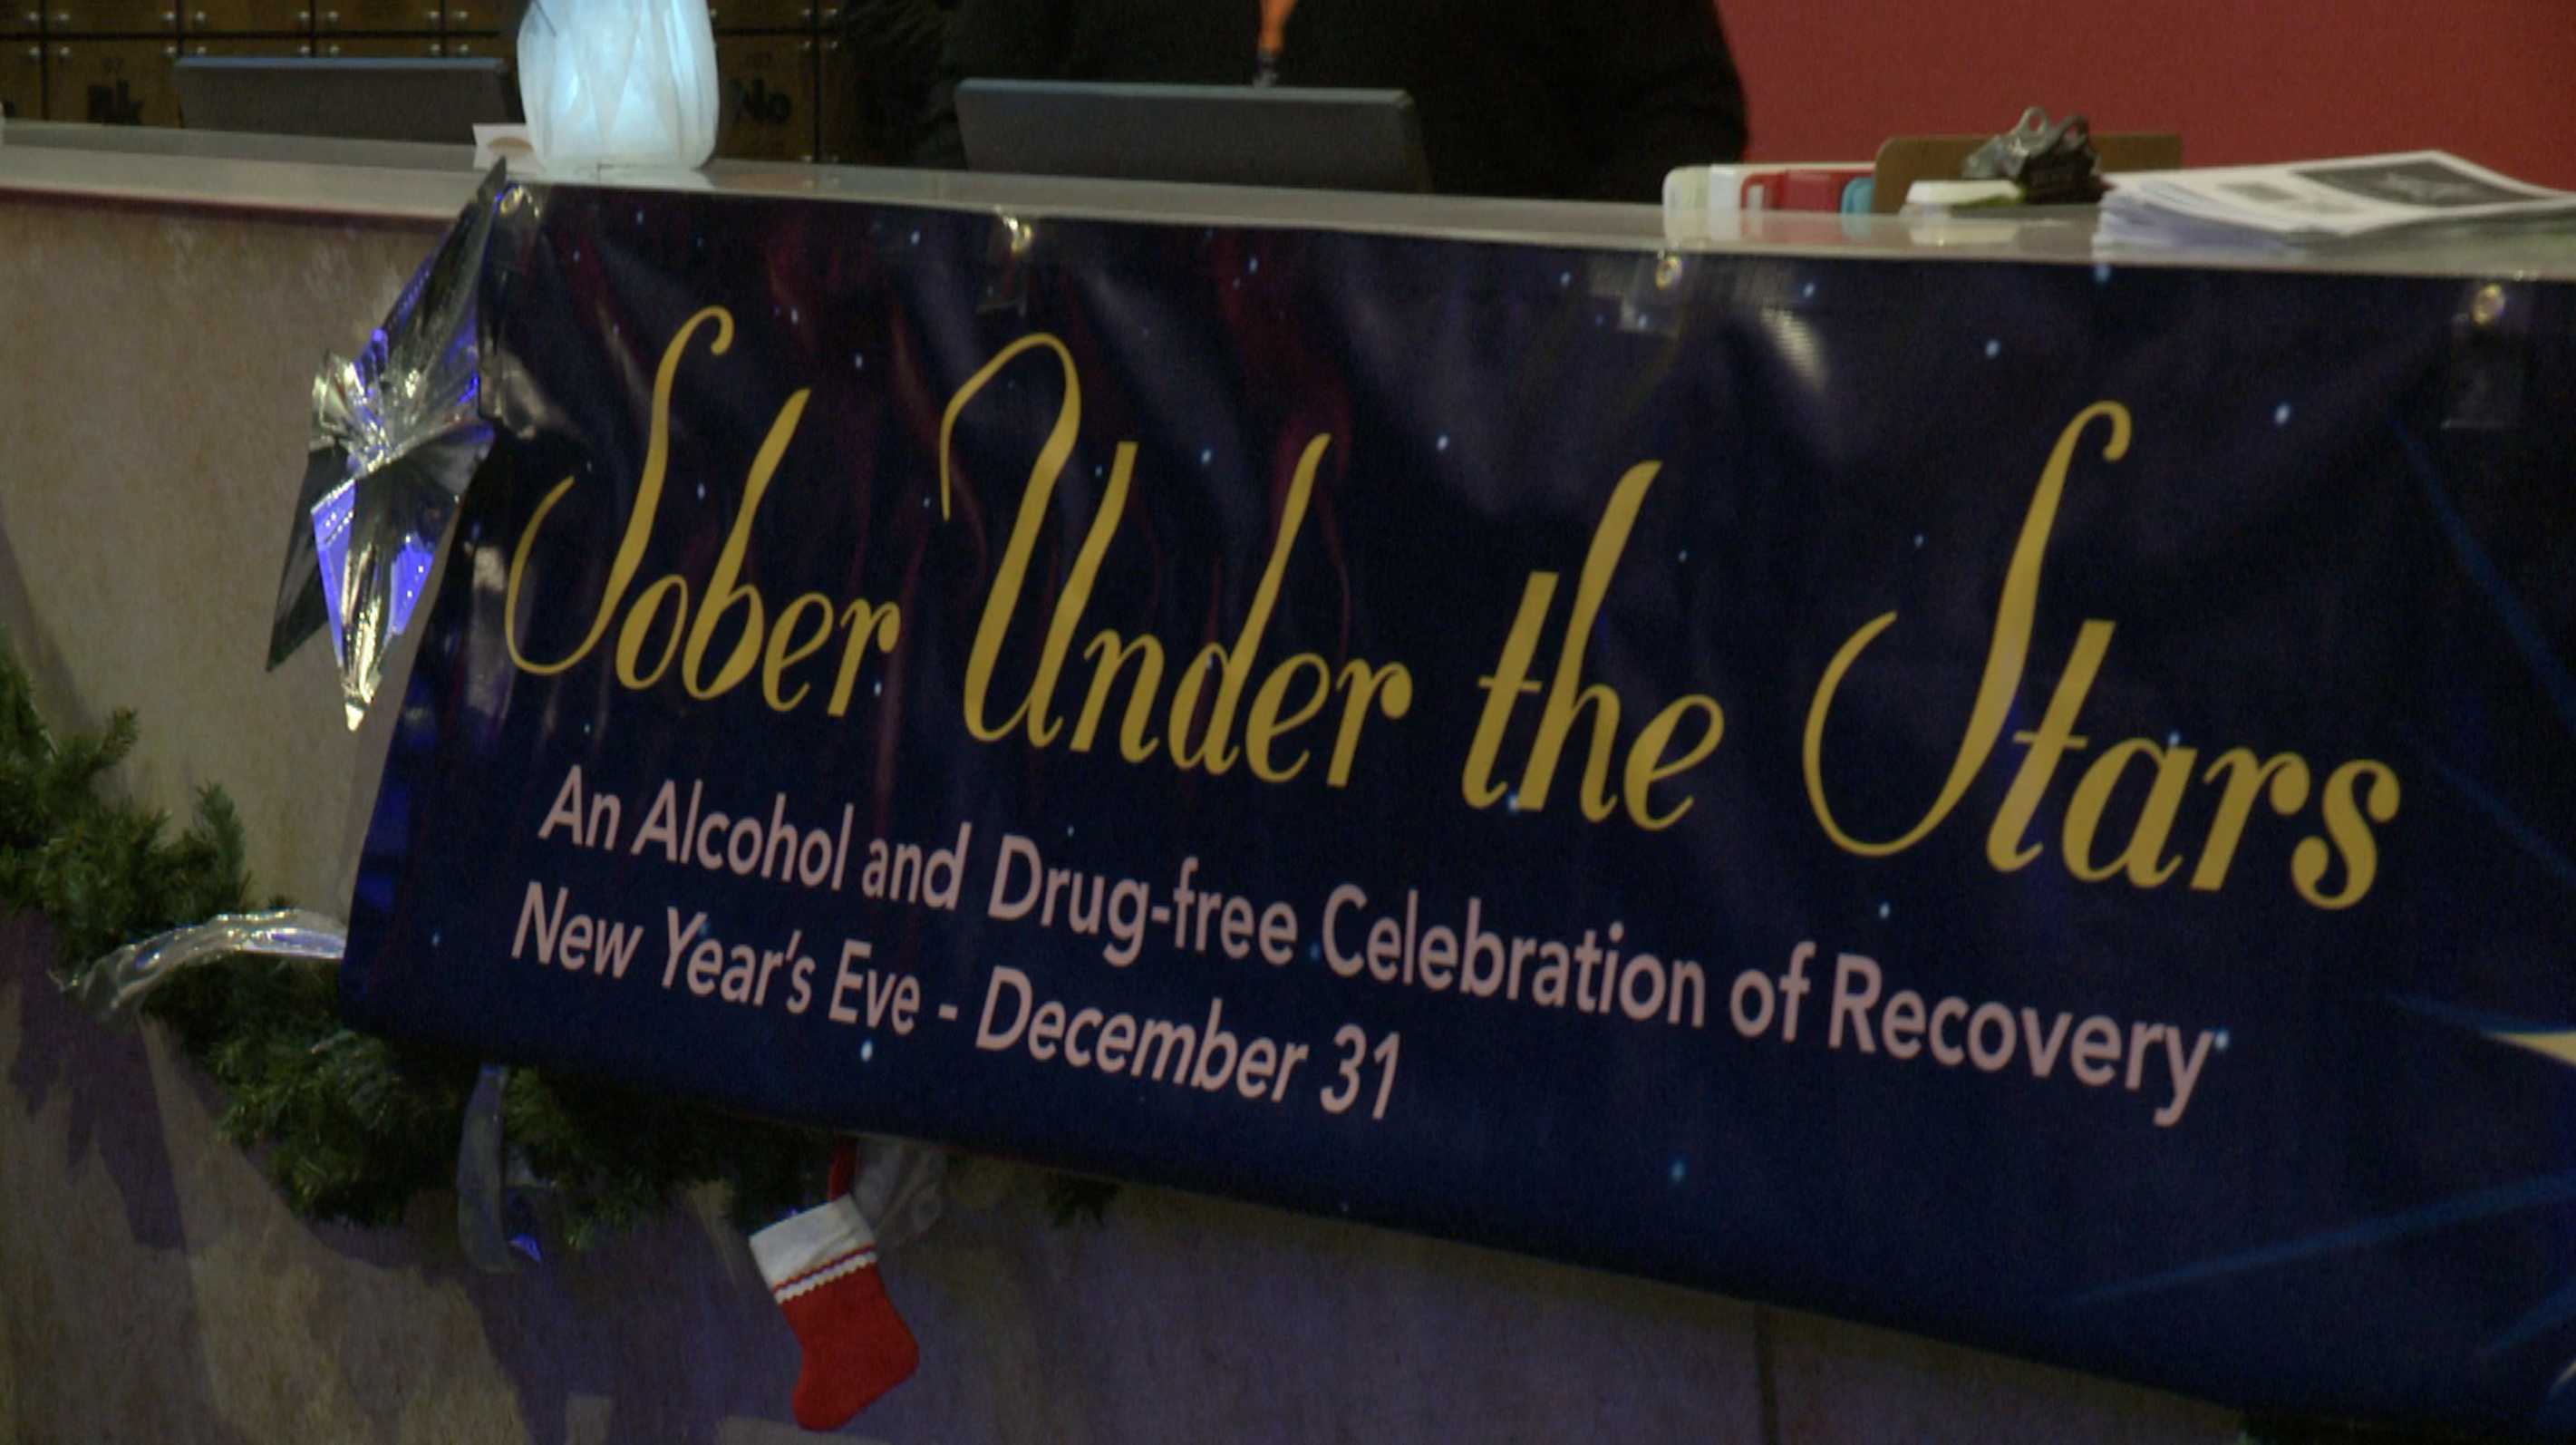 Sober Under The Stars to Take Place on State Fairgrounds New Year's Eve 10